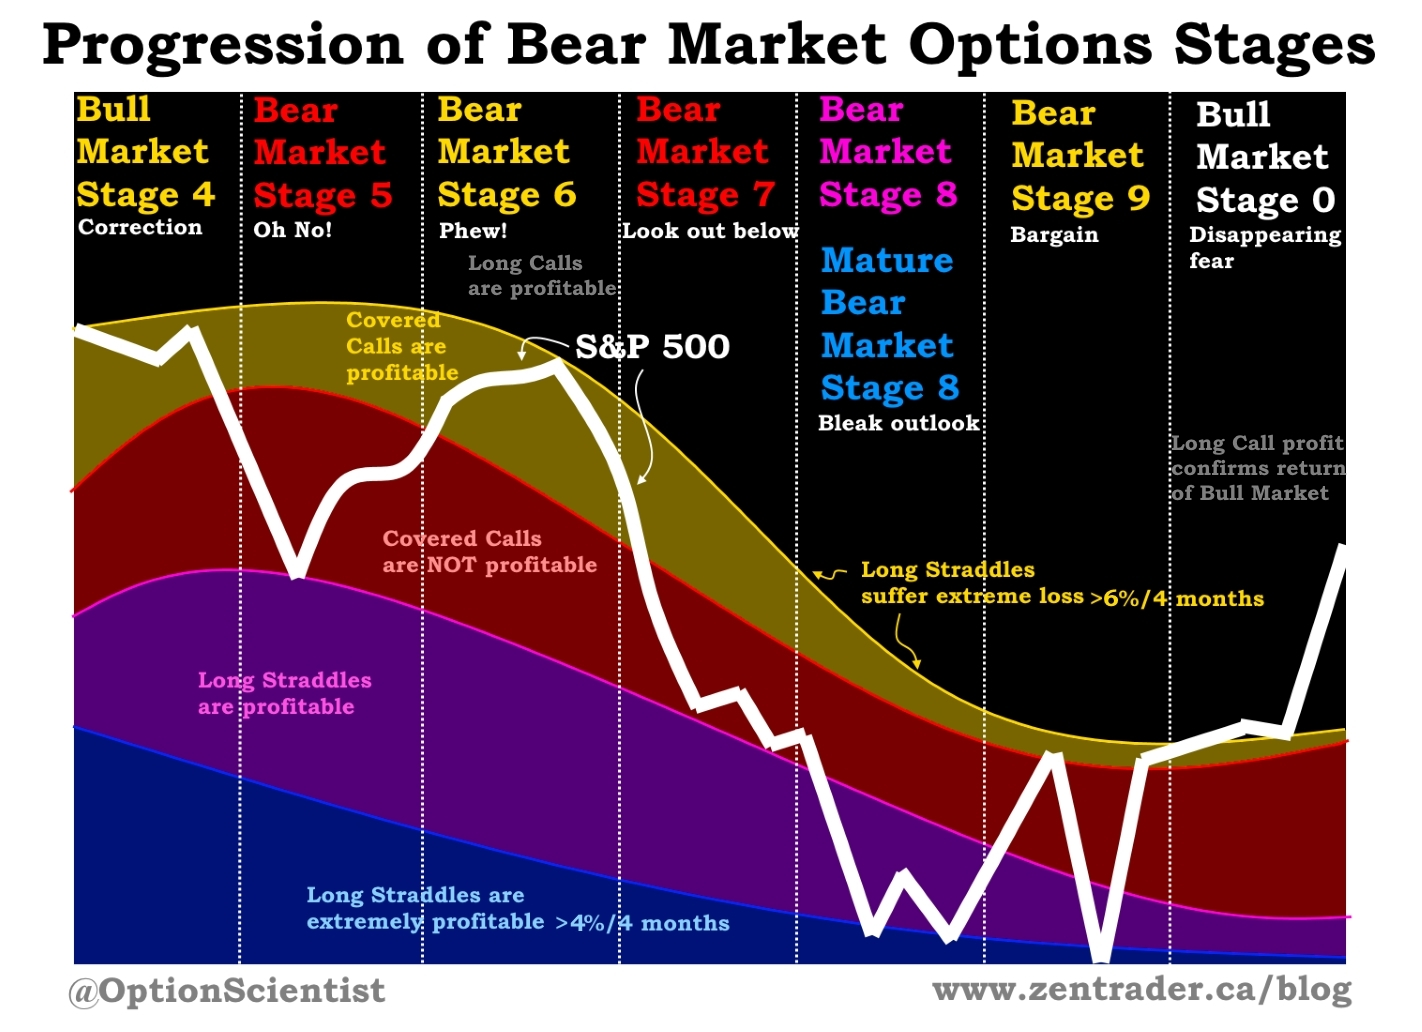 Progression of Bear Market Options Stages 2015